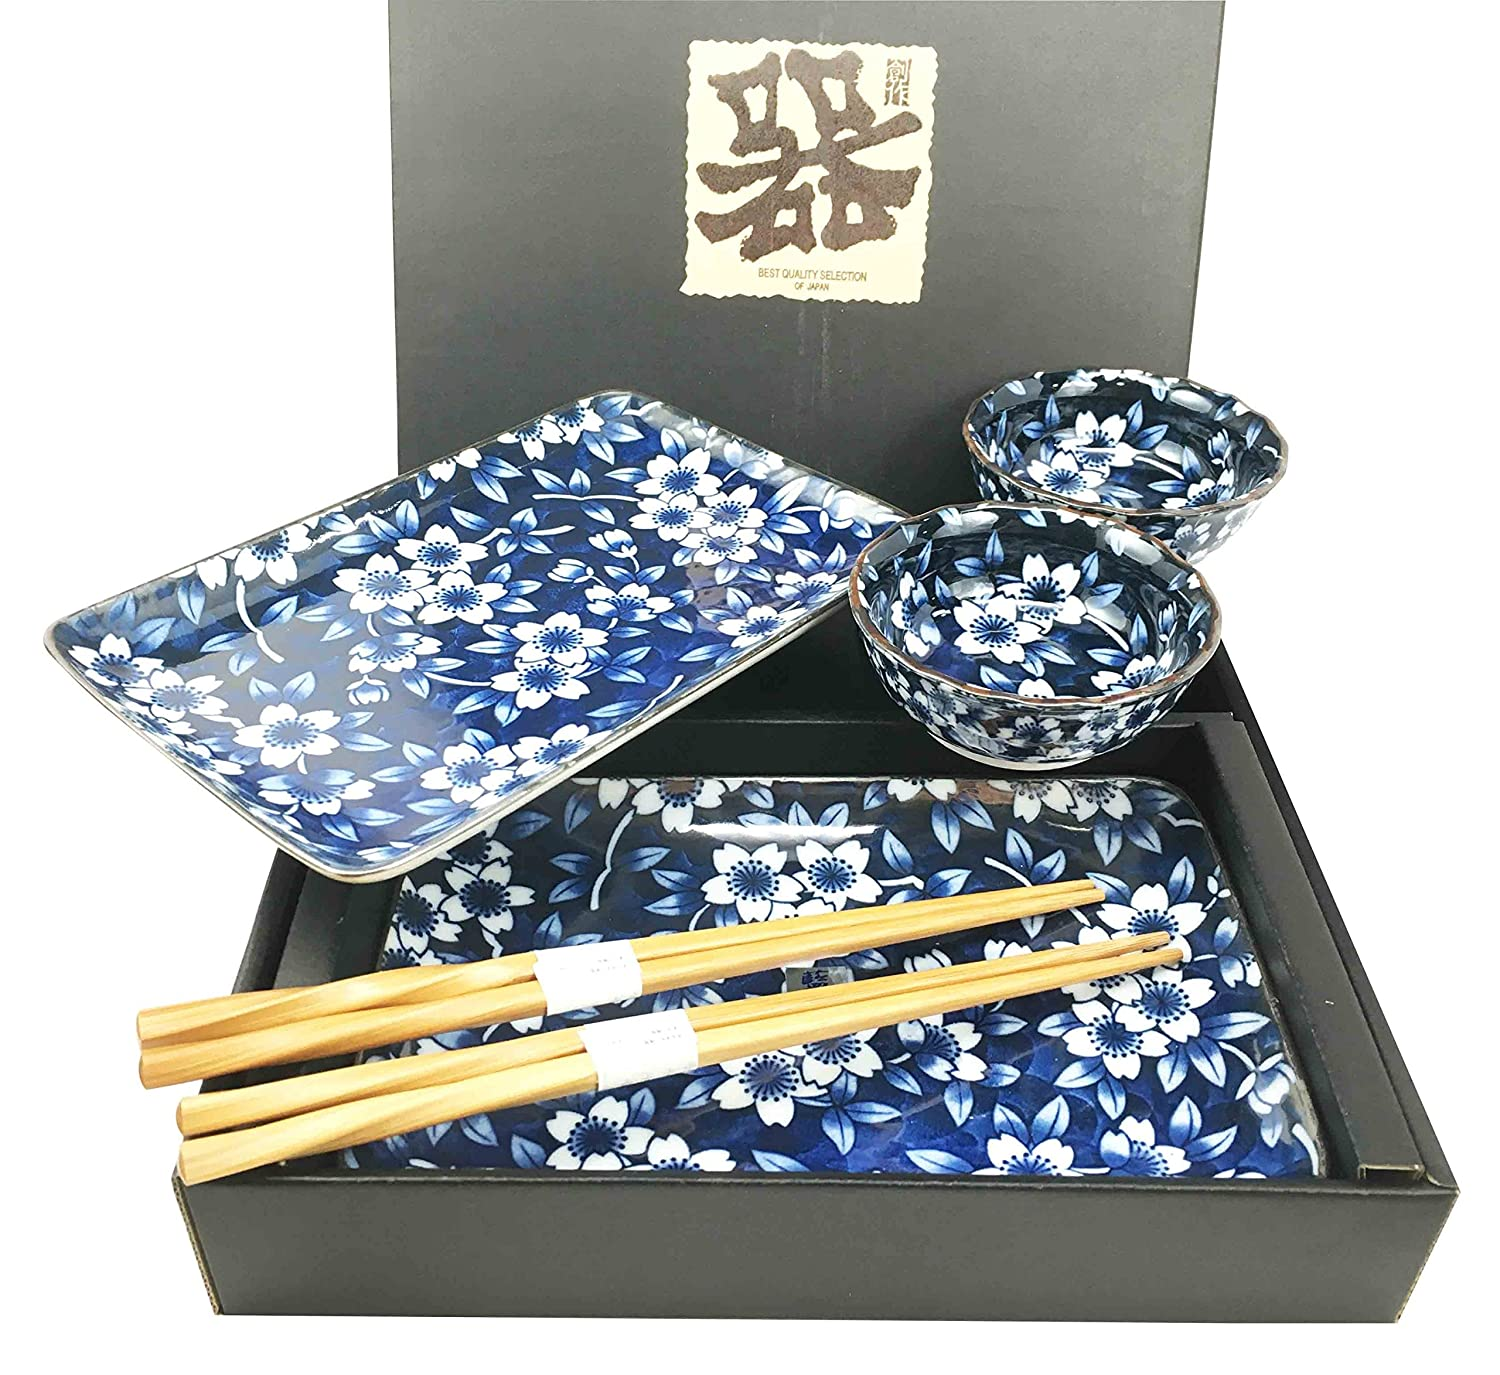 Made in Japan Floral Blossom Blue Motif Ceramic Sushi Dinnerware 6pc Set For Two Consisting Pairs of Sushi Plates Sauce Bowls and Chopsticks Great Housewarming Gift For Sushi Enthusiasts Gifts & Decors